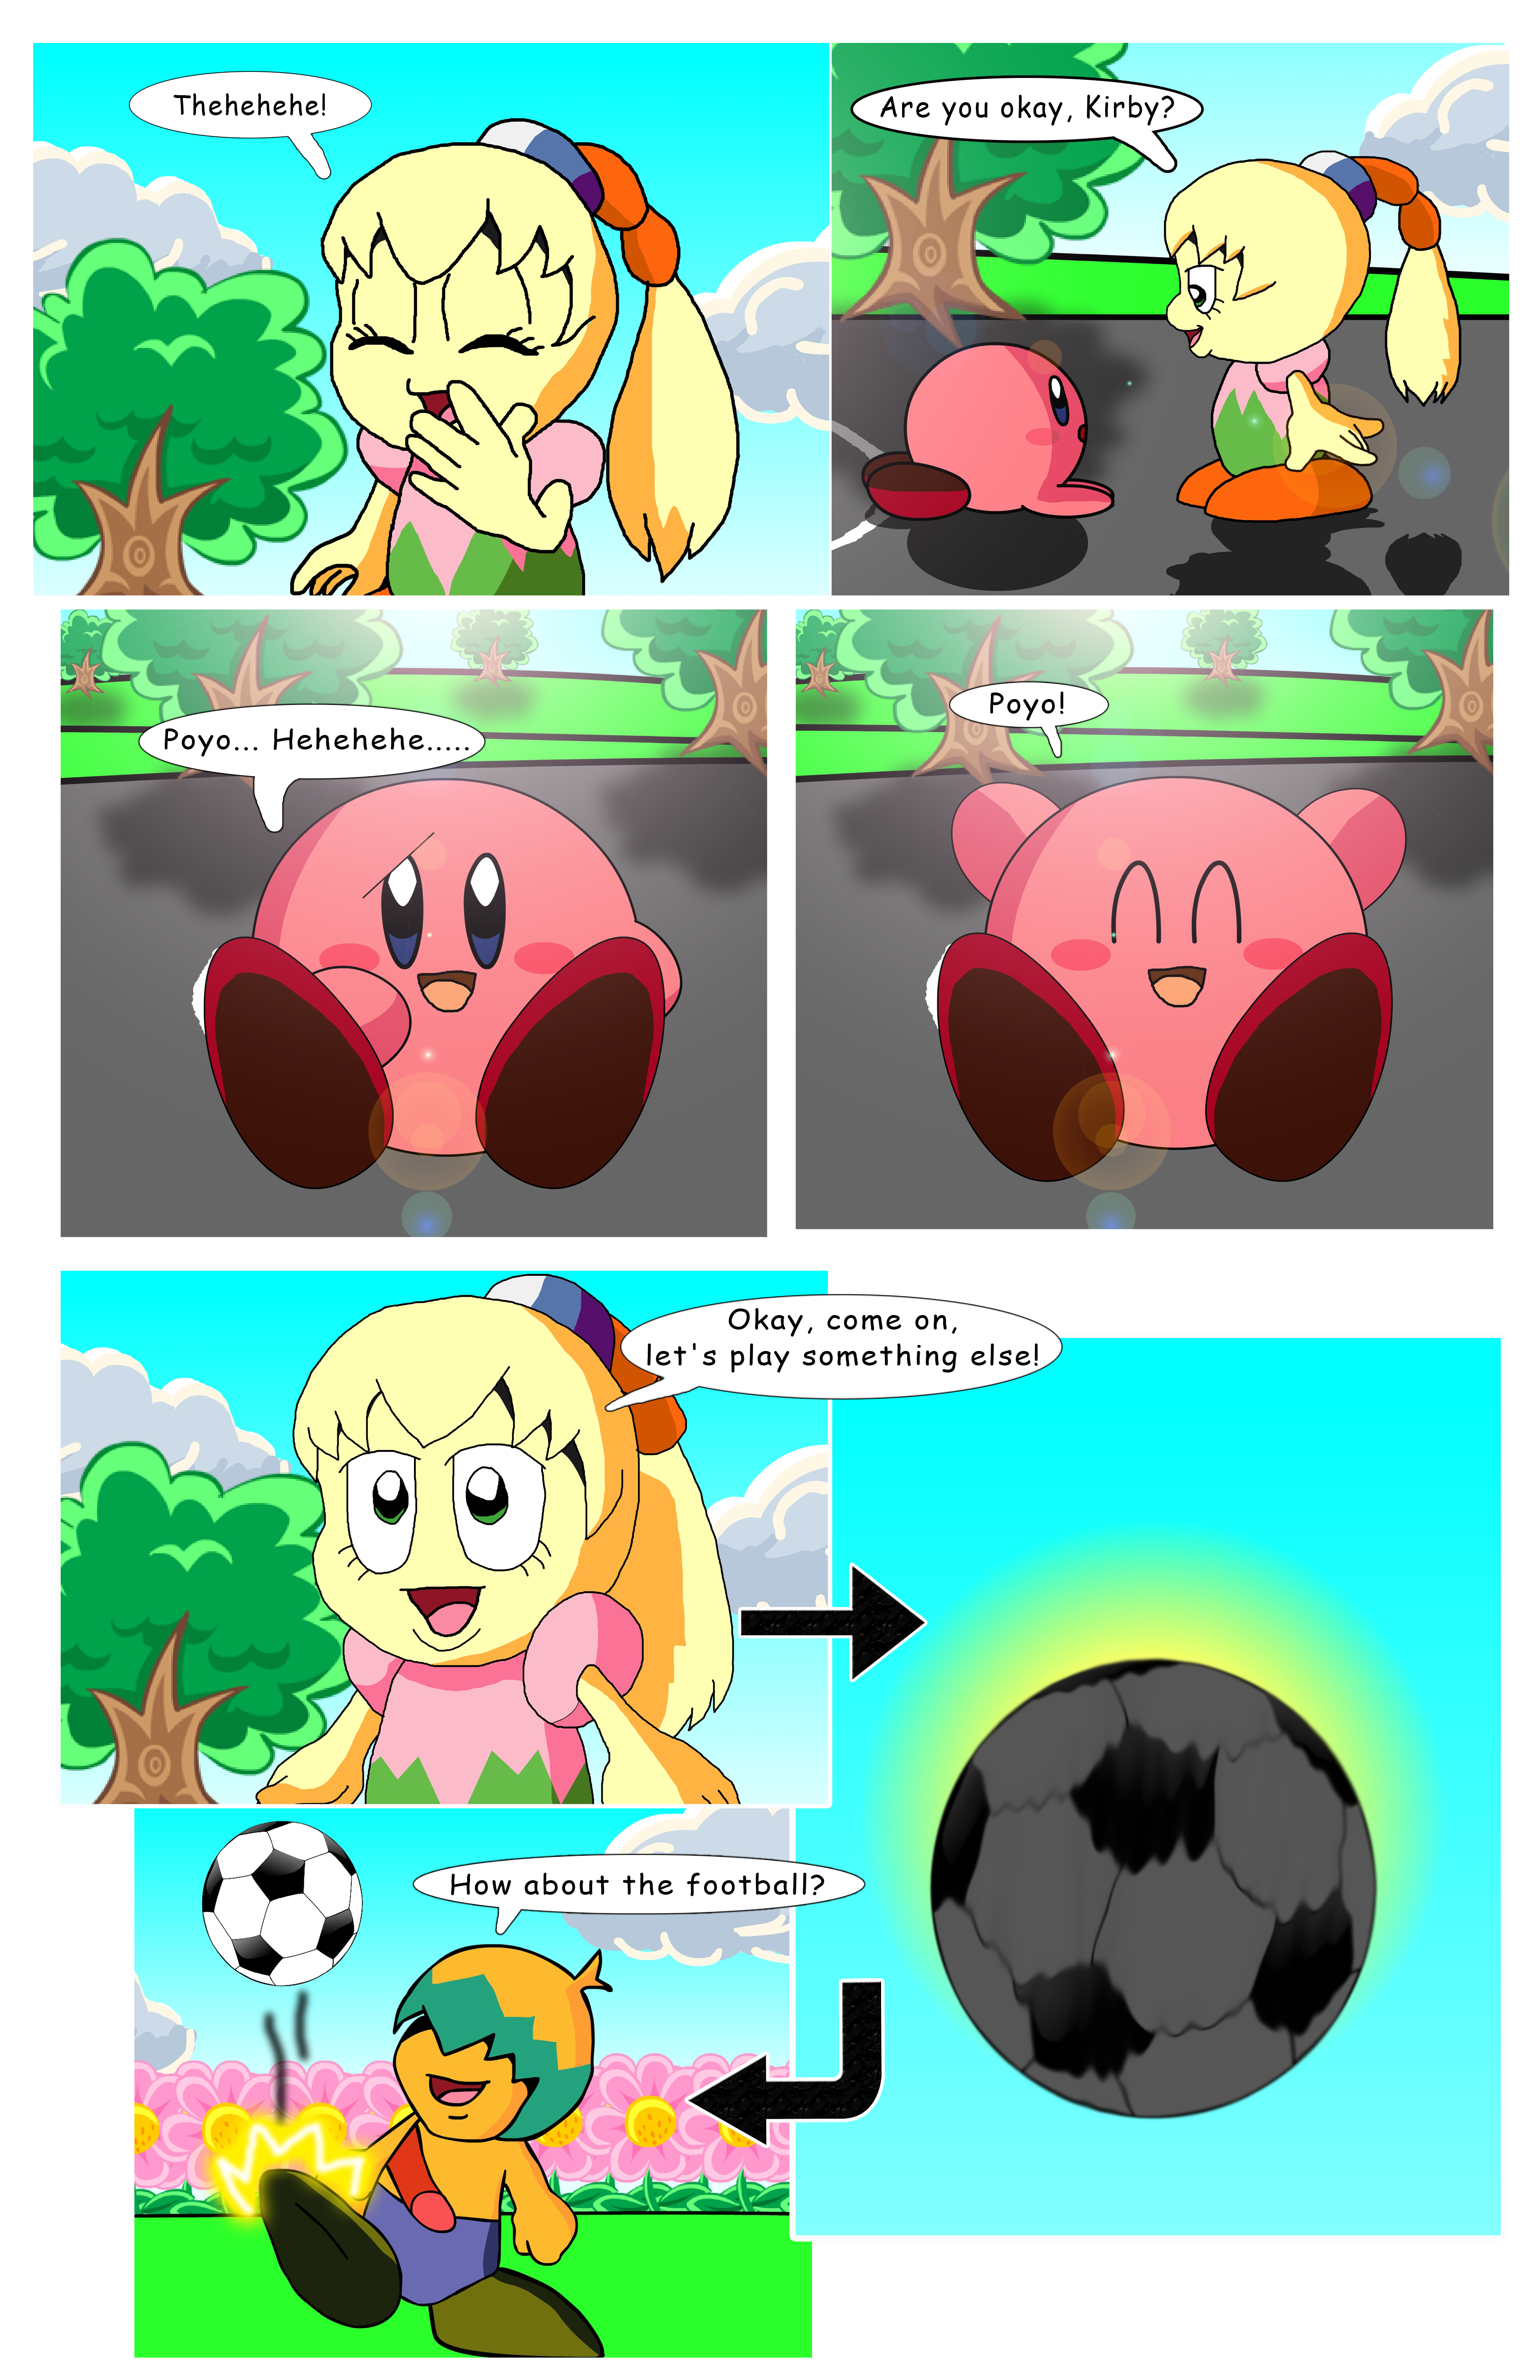 Kirby - WoA Page 9 by KingAsylus91